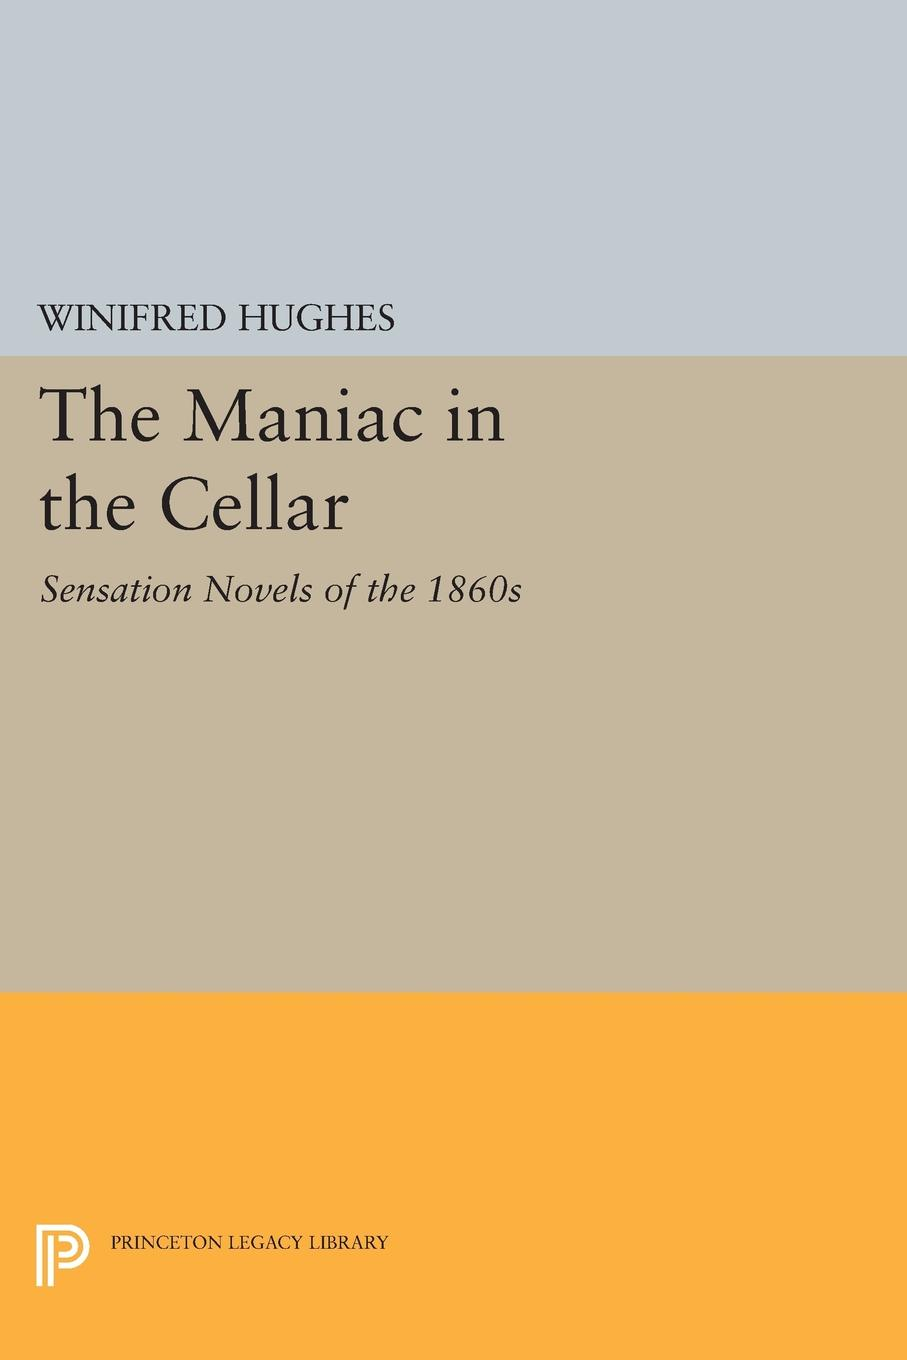 The Maniac in the Cellar